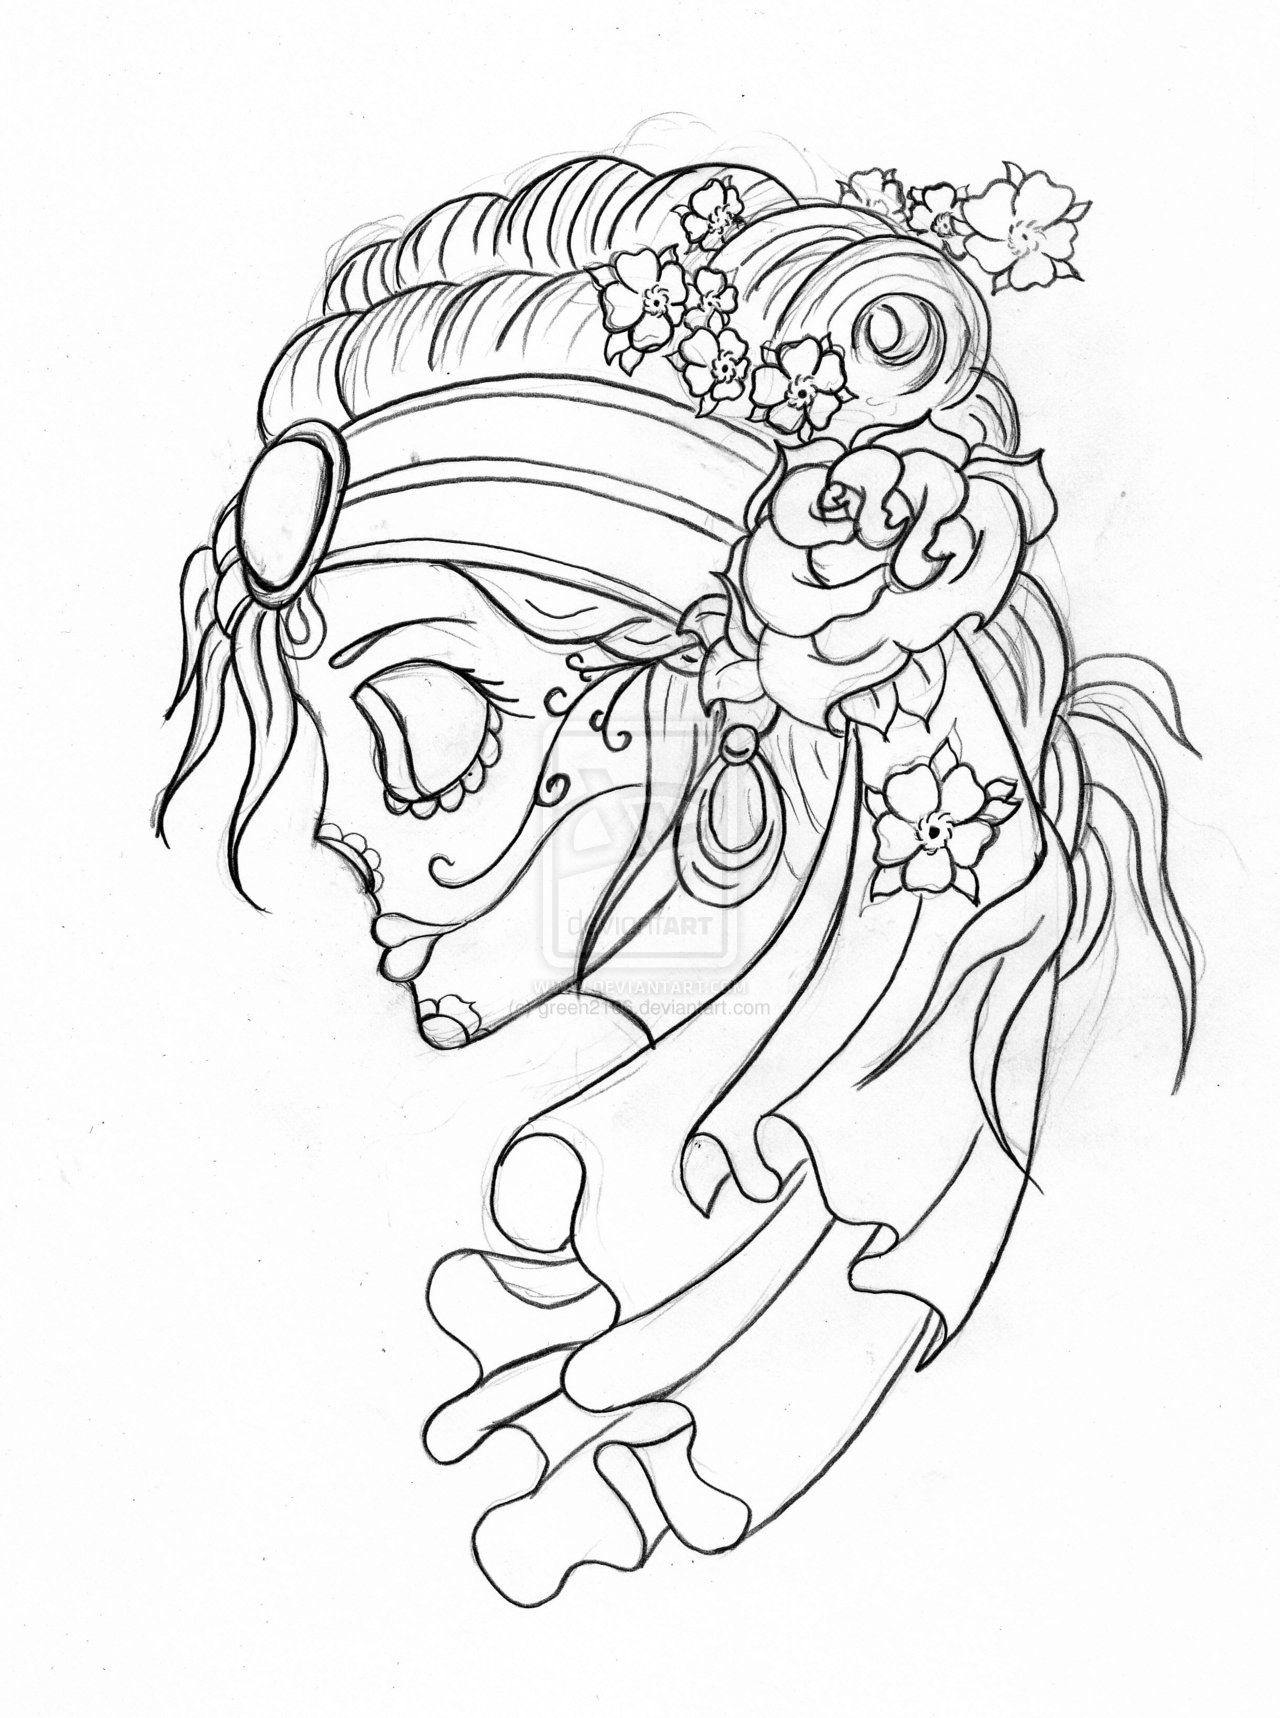 Skulls drawings gypsy candy skull with flowers by green2106 on skulls drawings gypsy candy skull with flowers by green2106 on deviantart dhlflorist Image collections